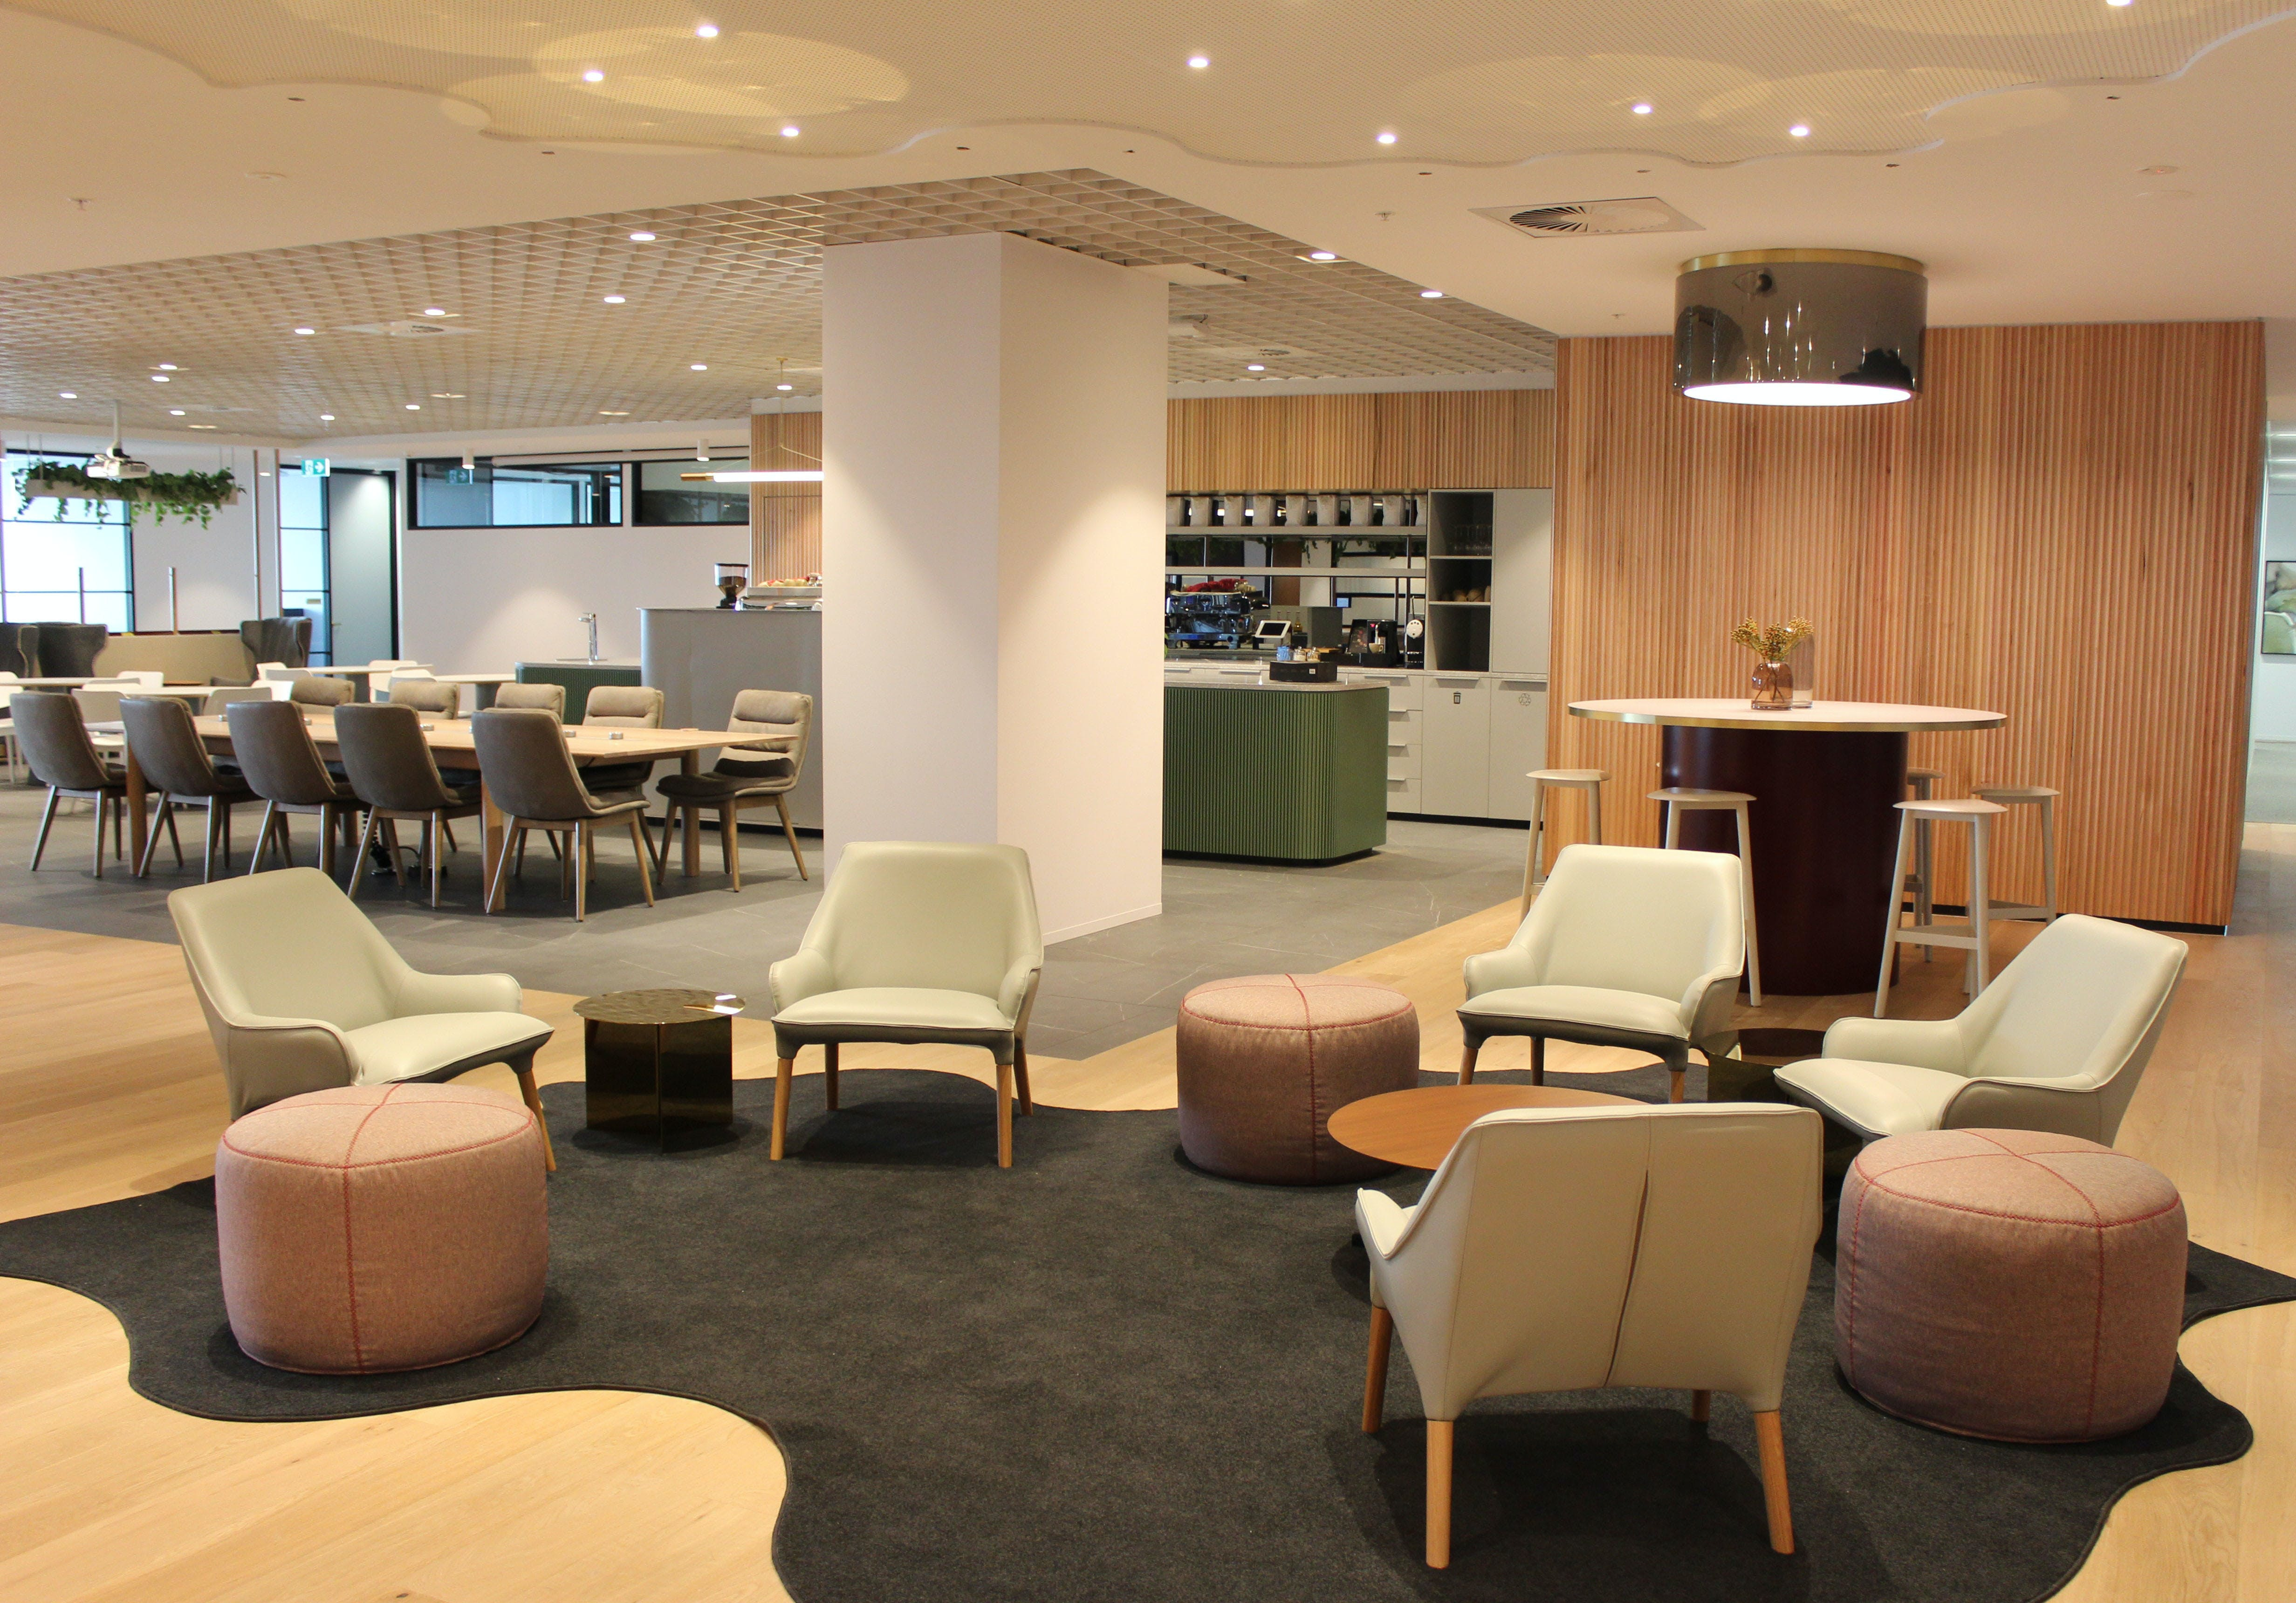 Room 23A, meeting room at The Executive Centre - Collins Square, image 4